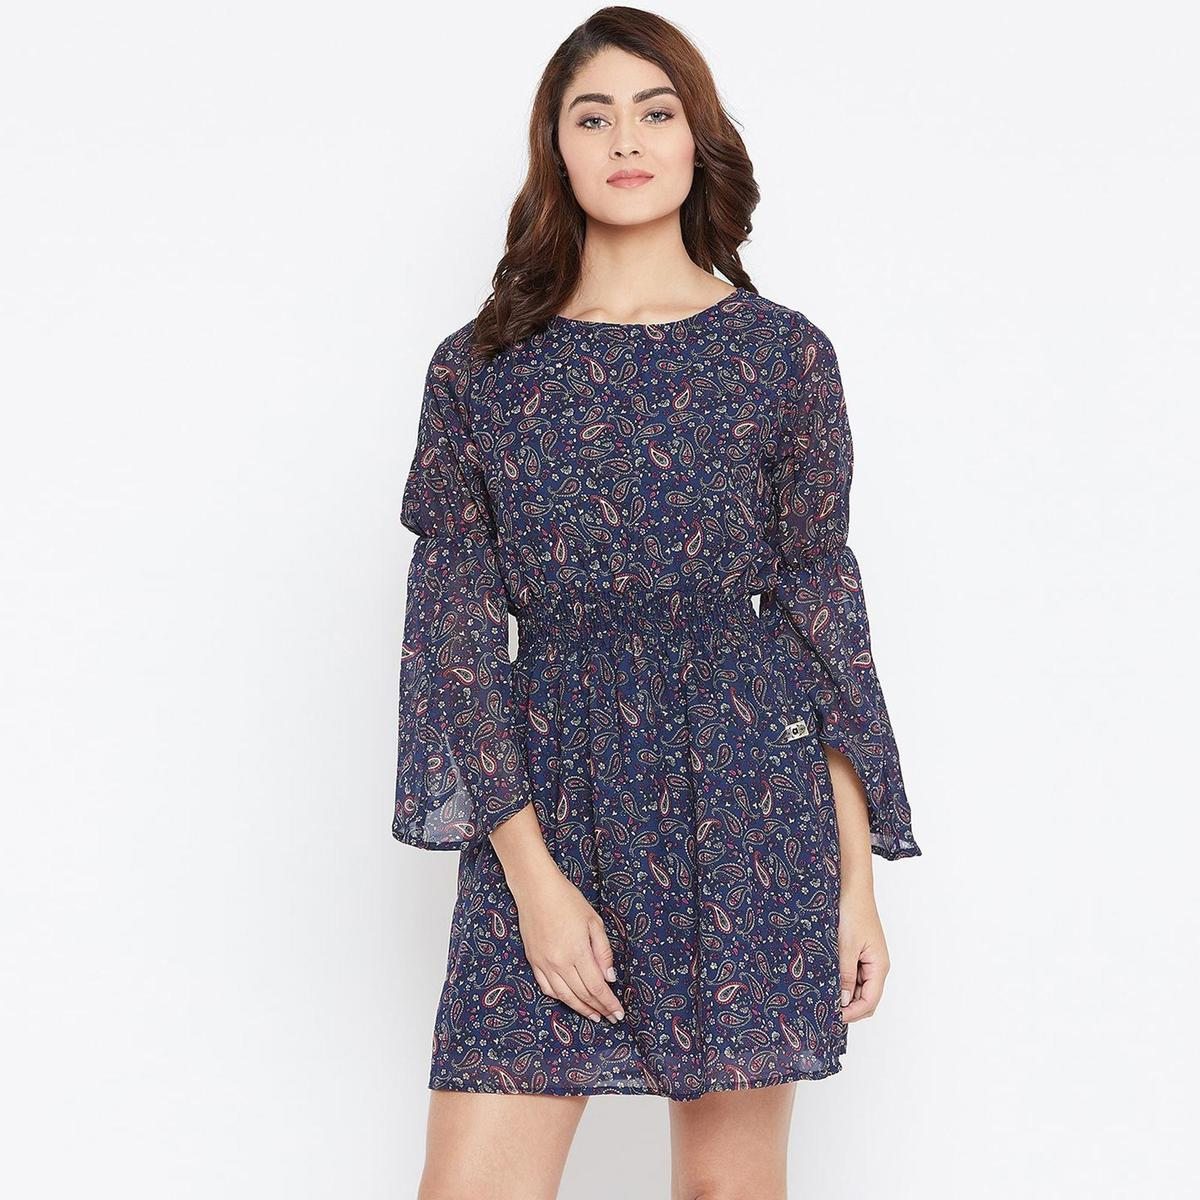 Opulent Navy Blue Color Casual Wear Paisley Printed Georgette With Cotton lining Knee Length Dress